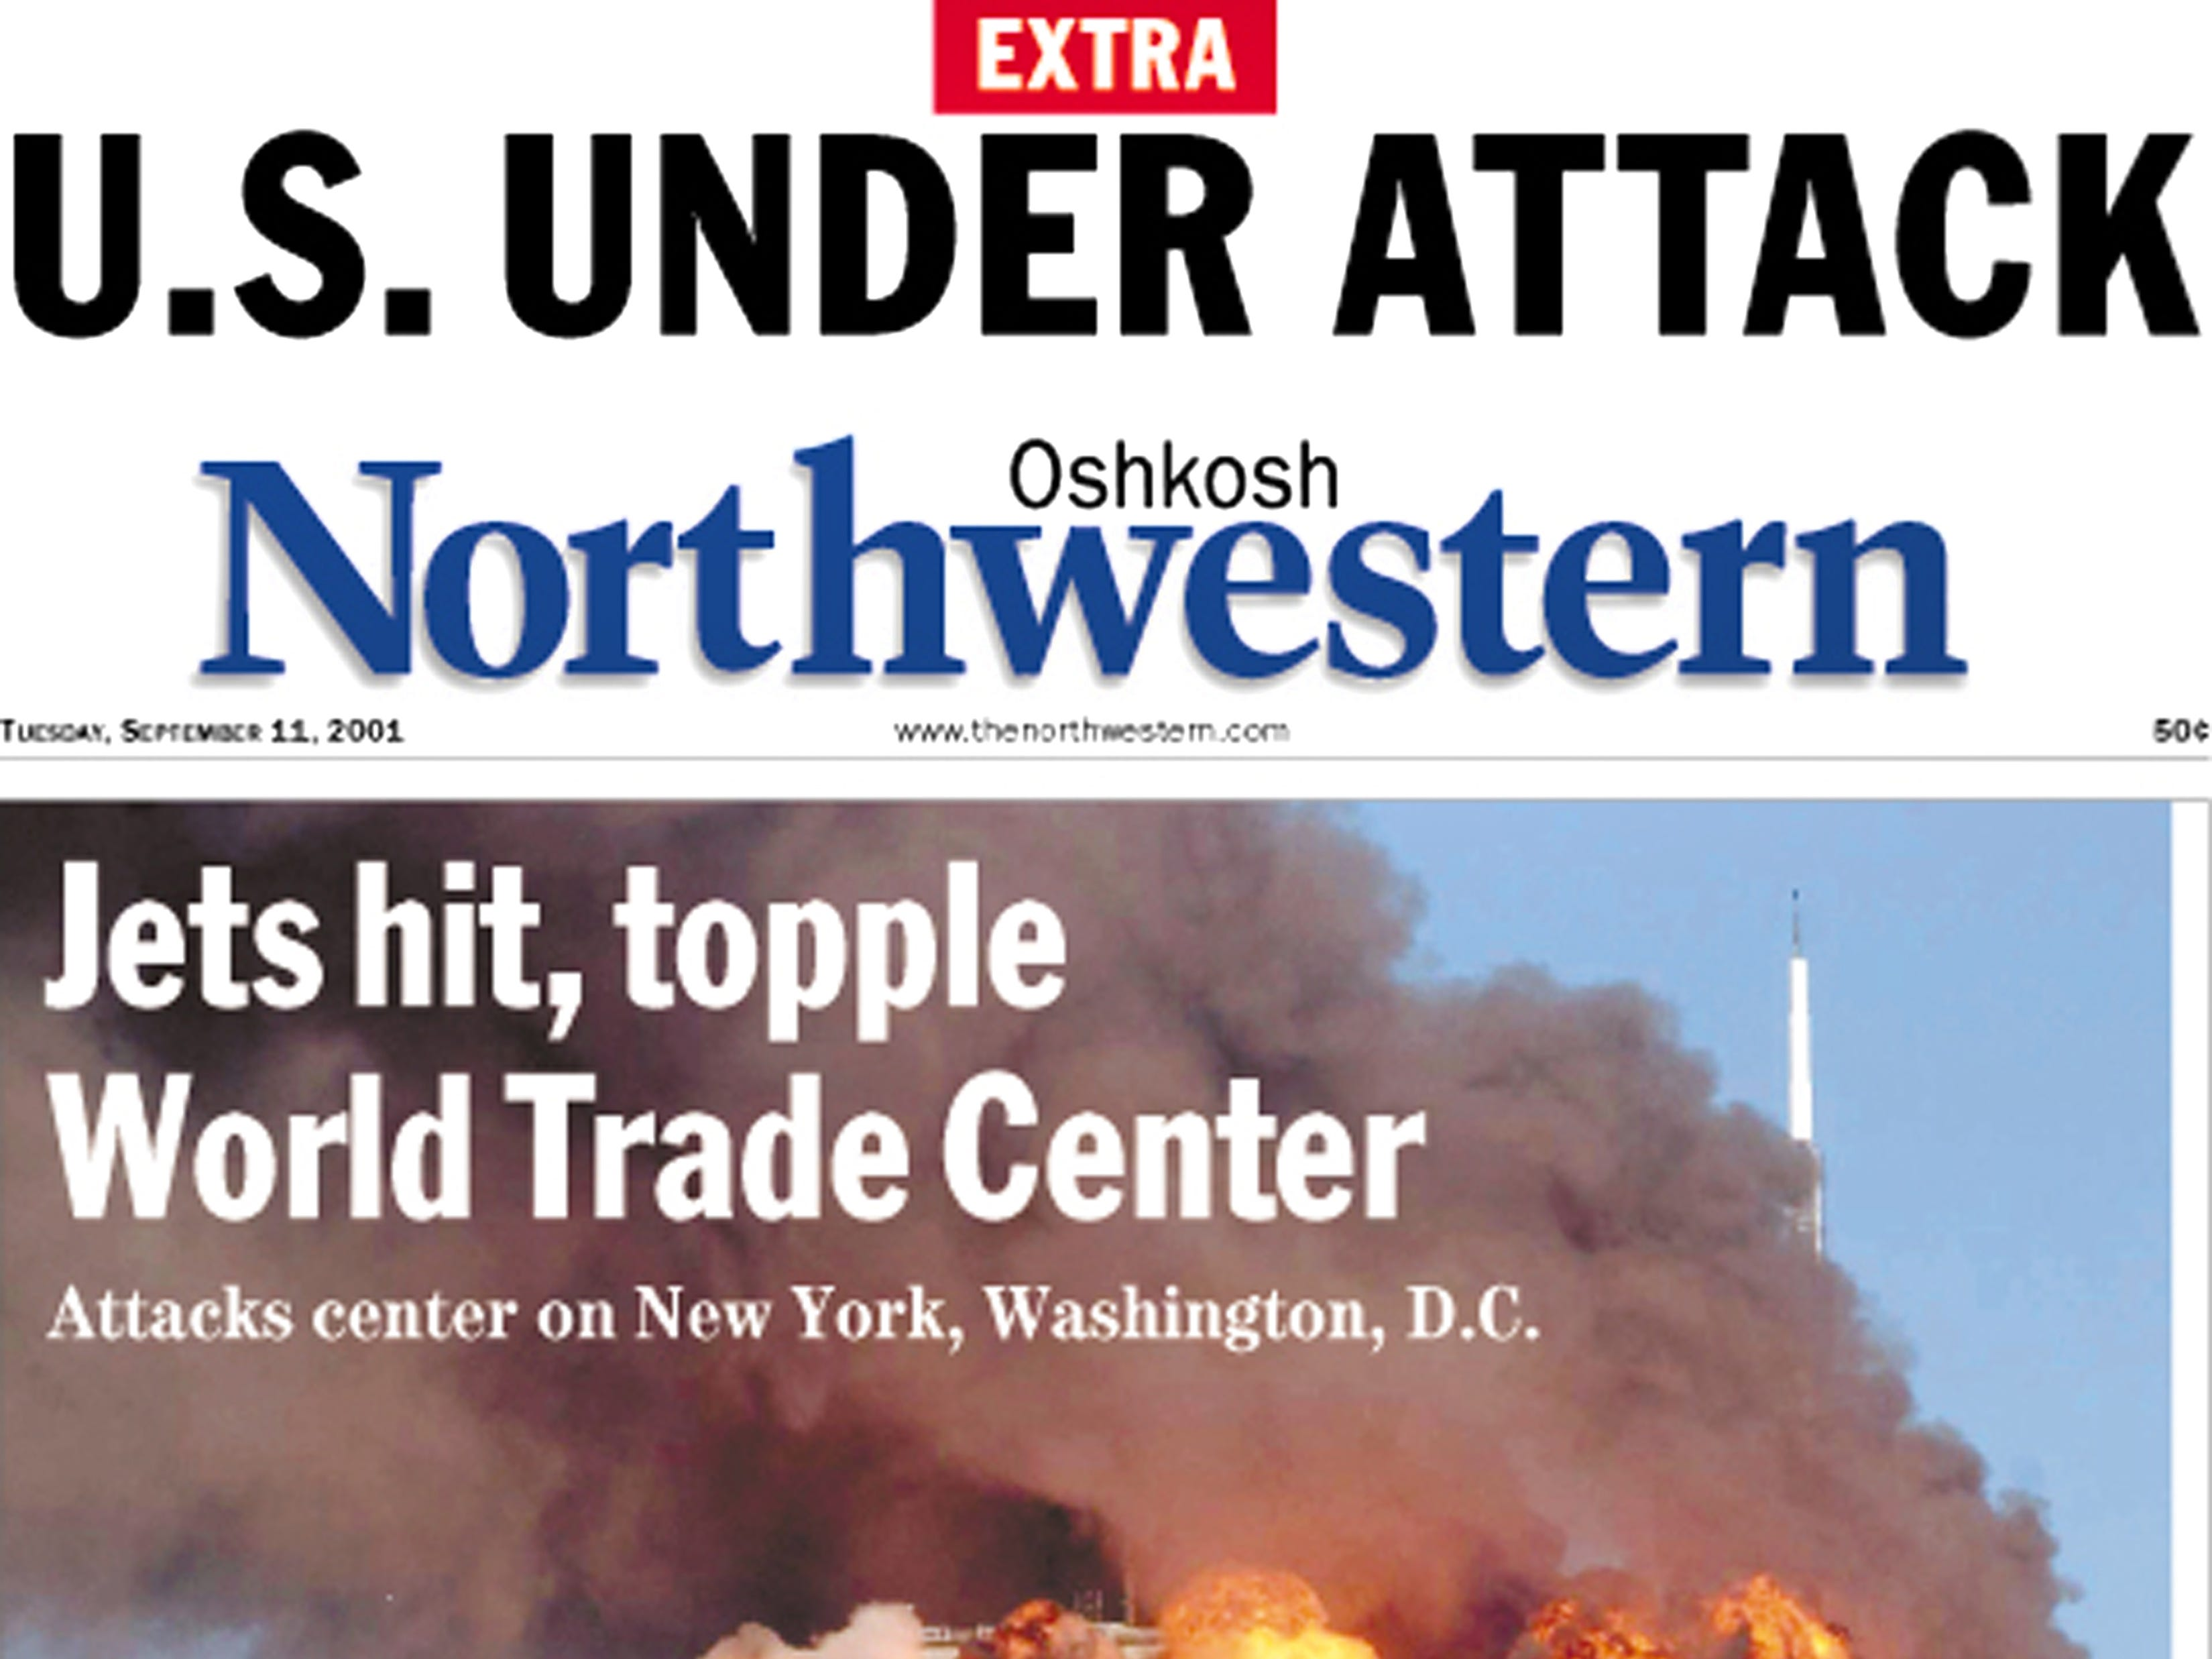 Front page of The Oshkosh Northwestern on Sept. 12, 2001